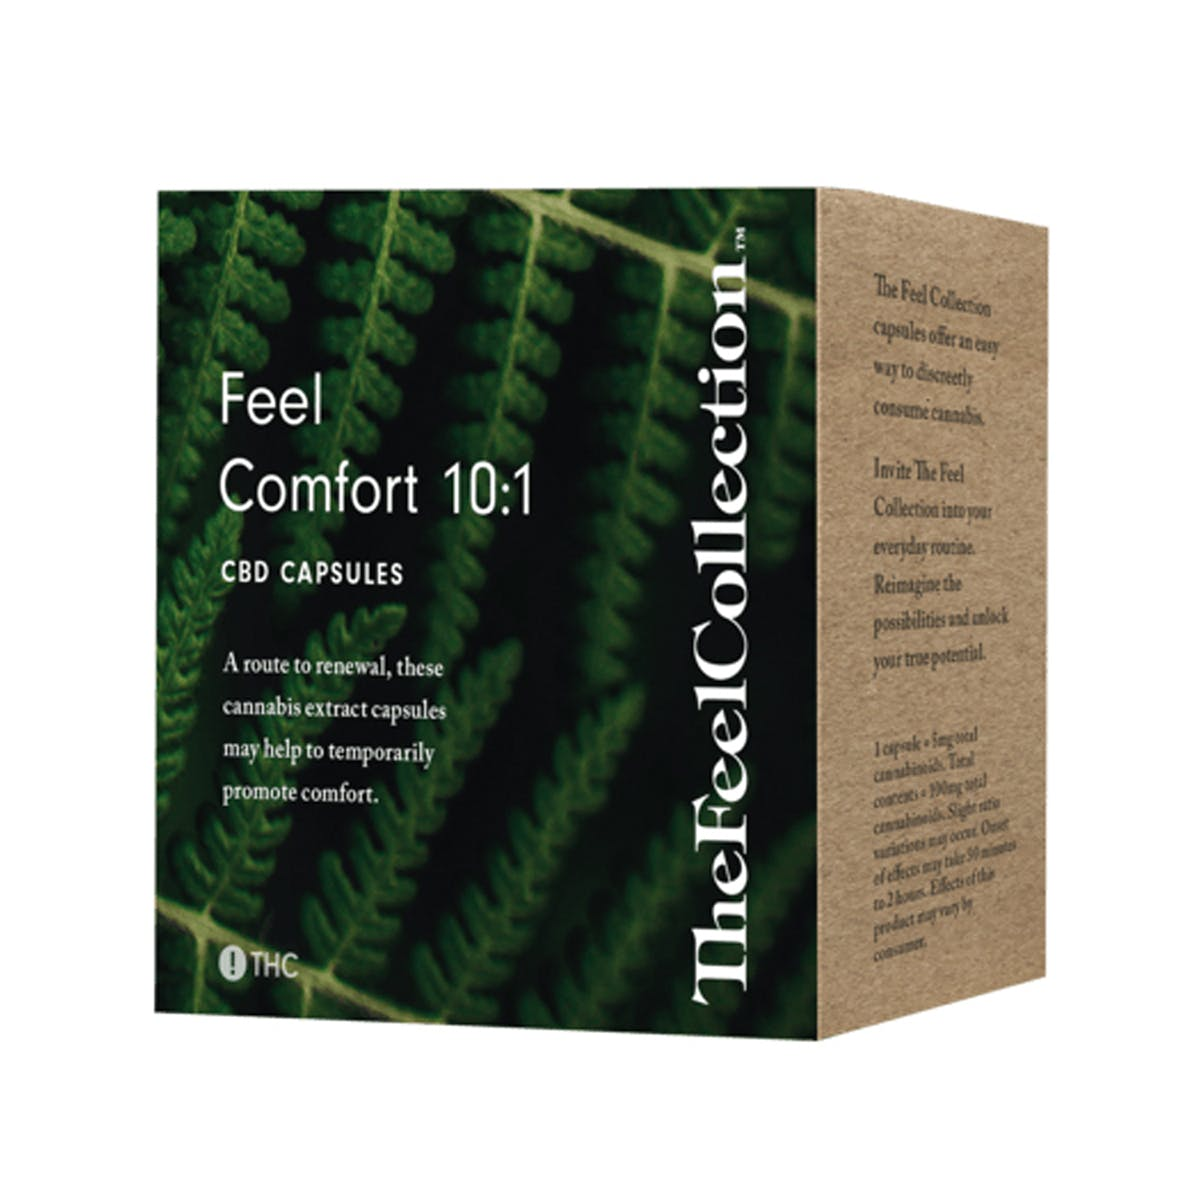 marijuana-dispensaries-greenhouse-wellness-in-ellicott-city-feel-comfort-101-cbd-capsules